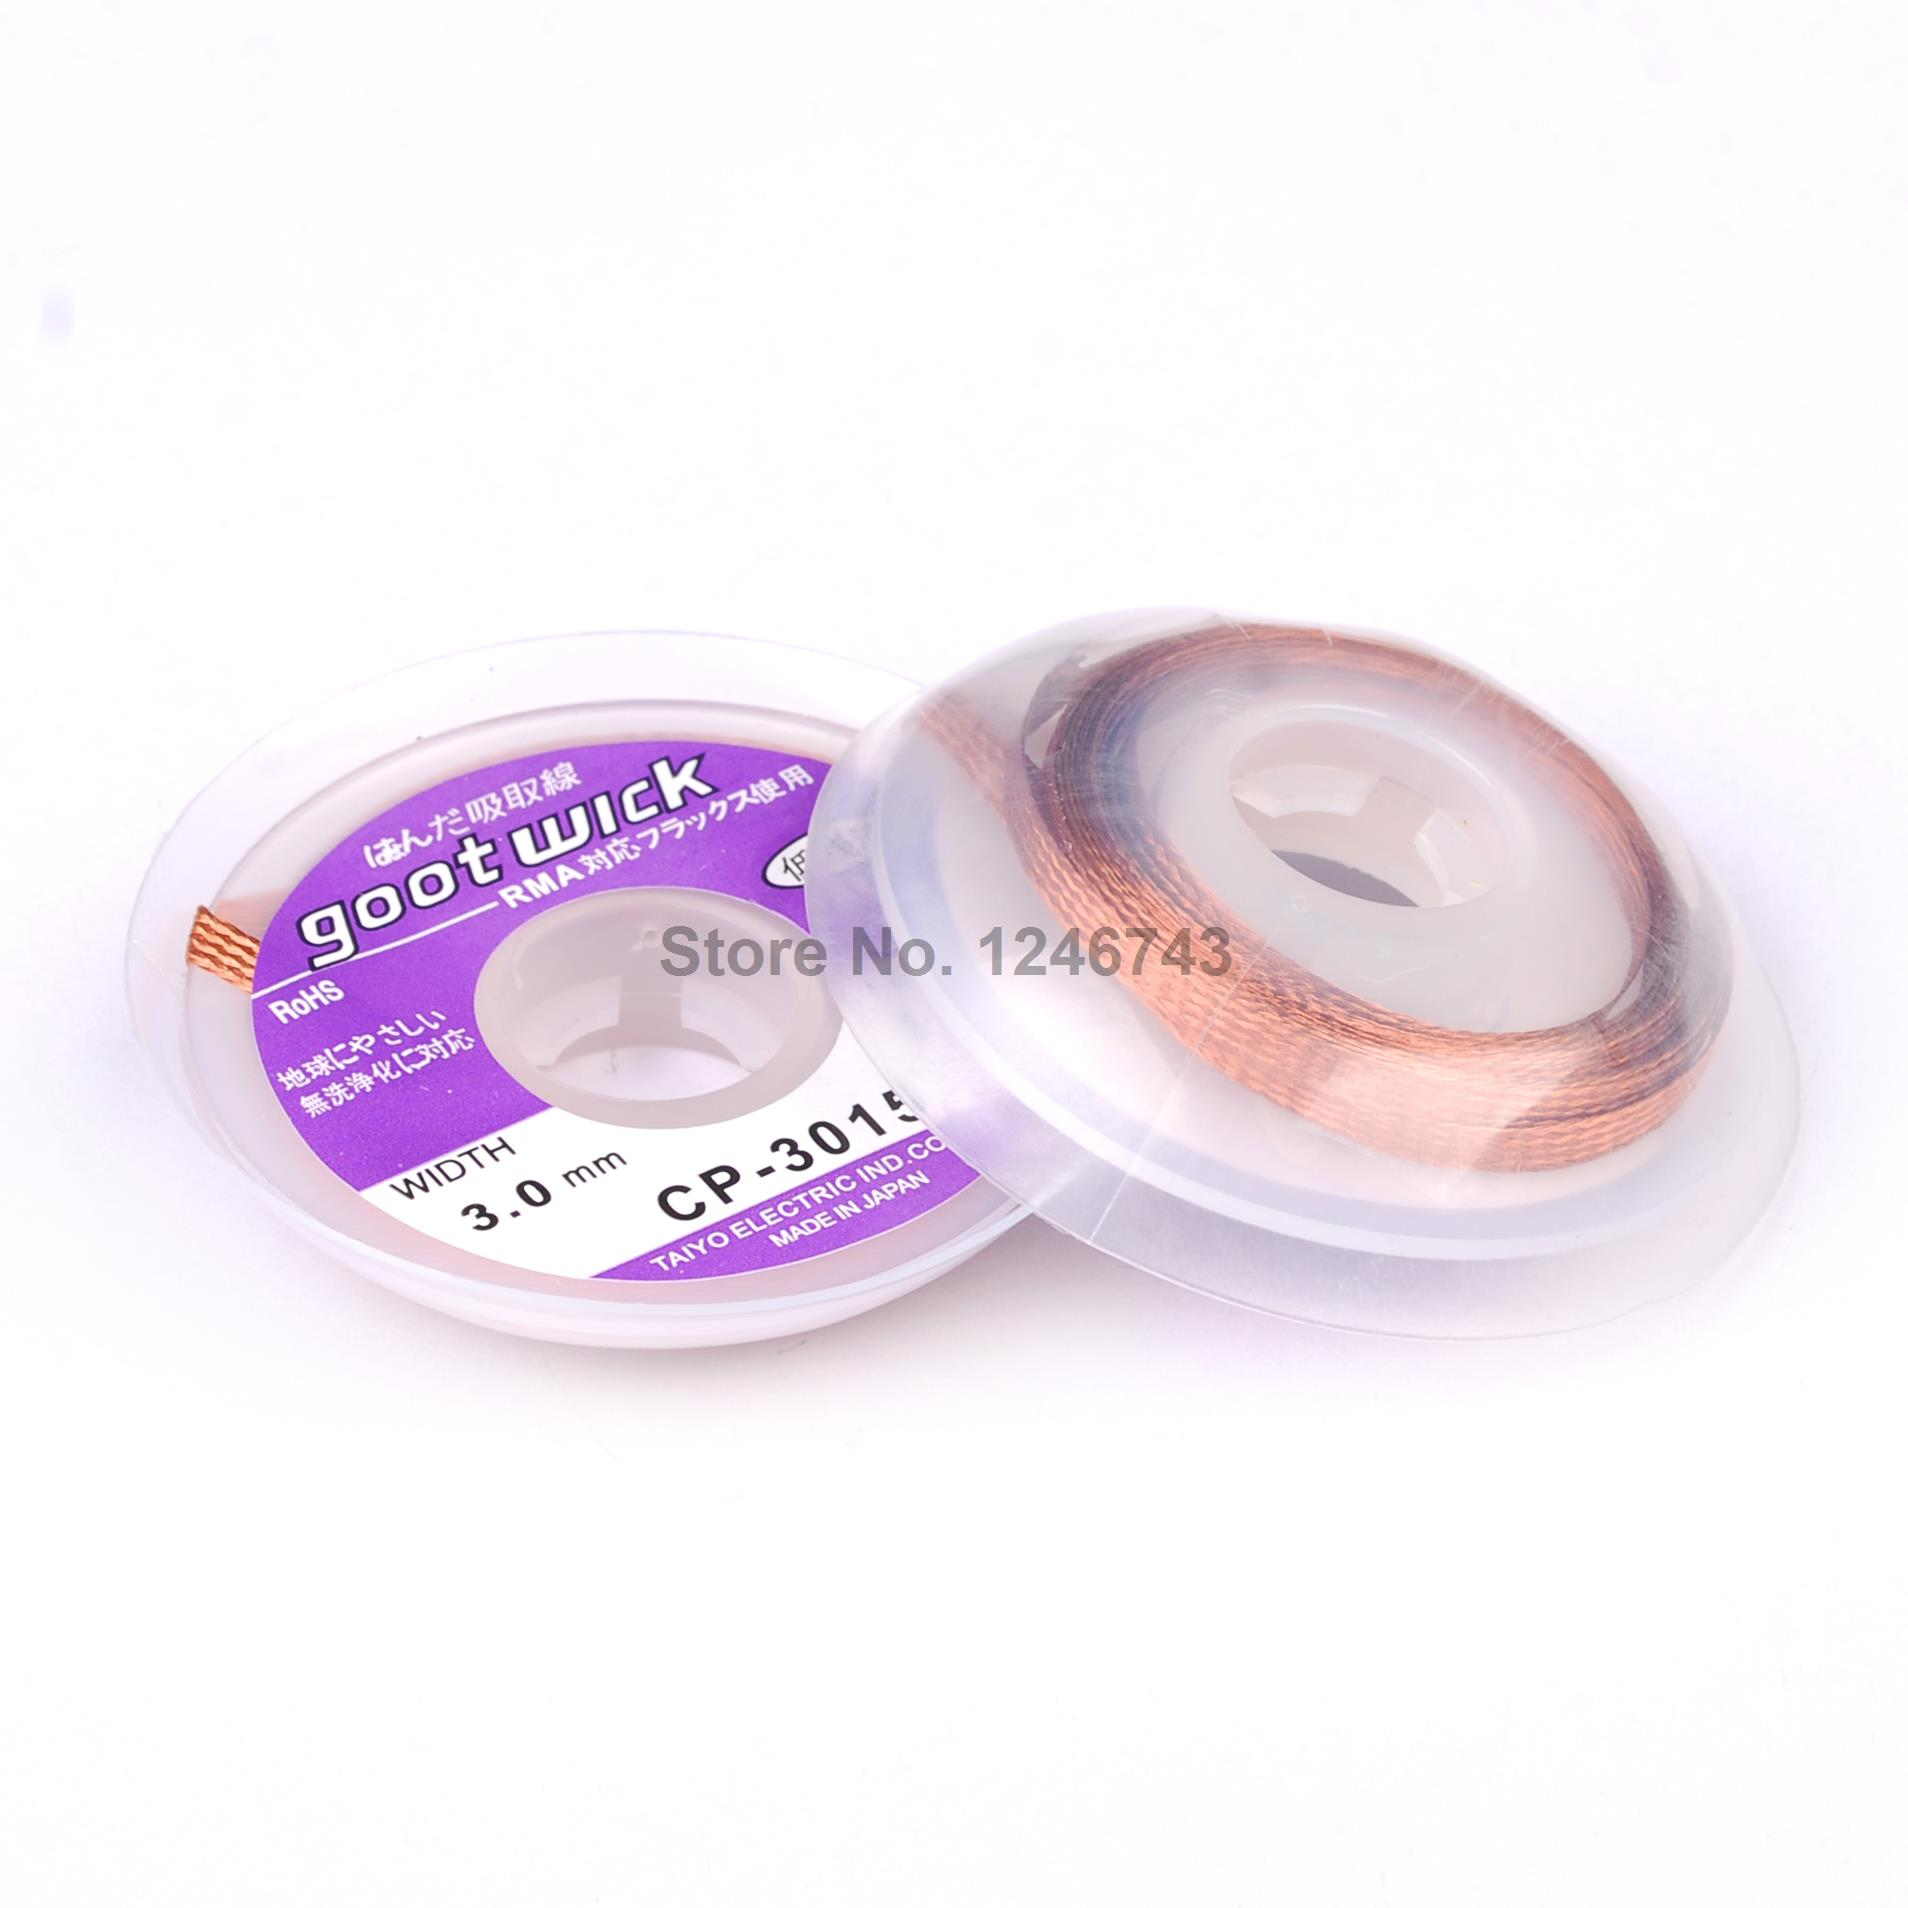 1PCS/LOT BGA Desoldering Braid Solder Wick Tin Remover Wire CP-3015 Soldering Accessory Wholesale Desoldering Wire